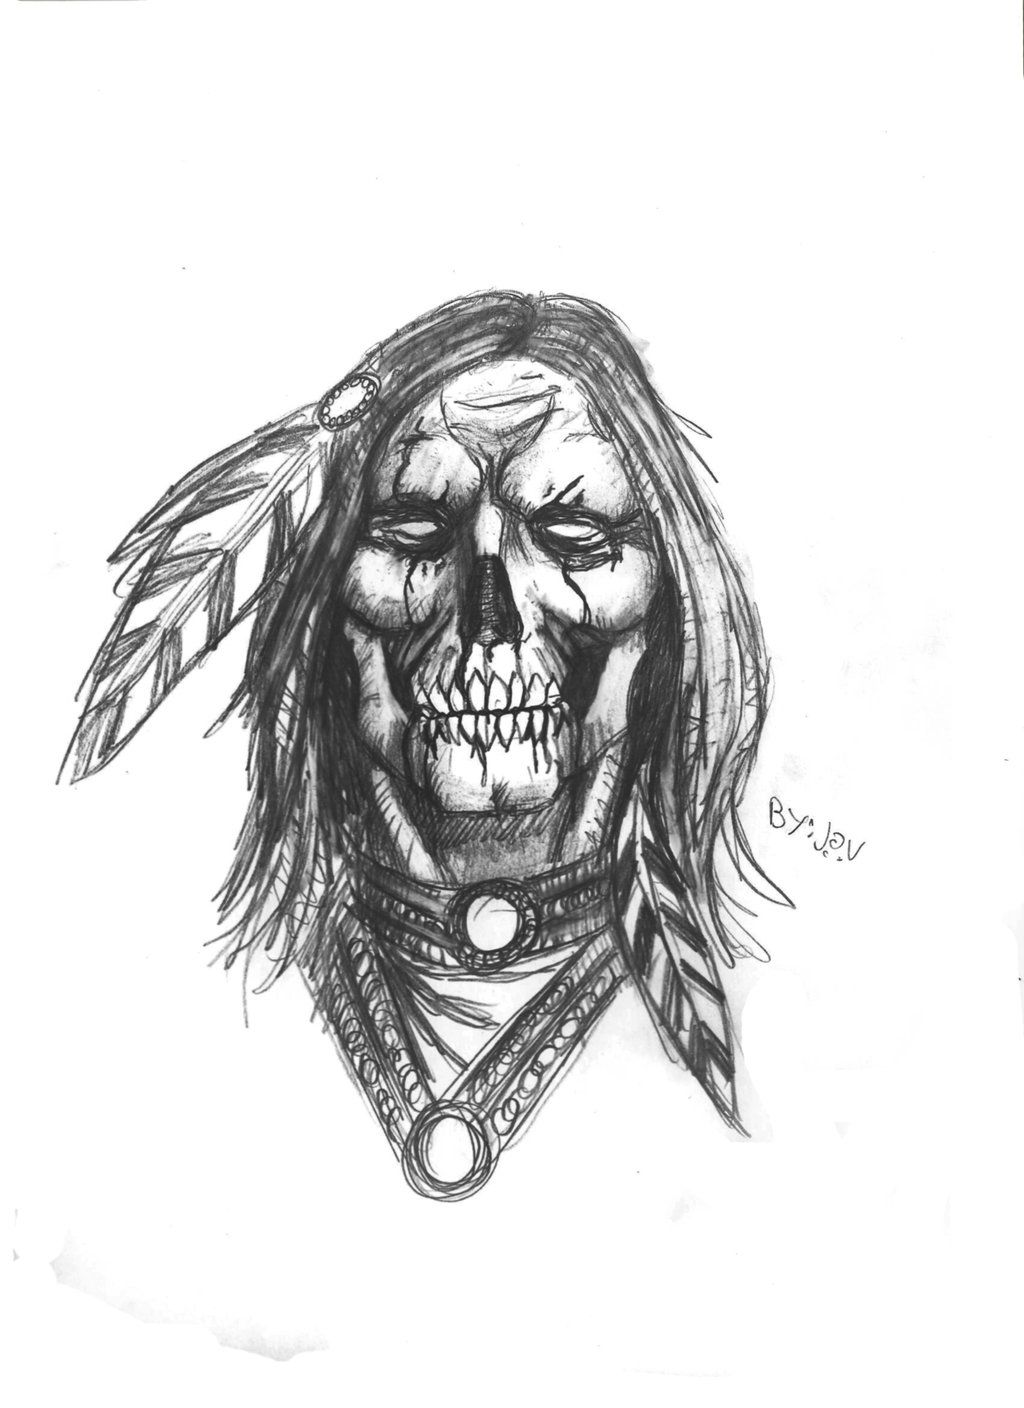 Native American Skull By Darkmatteria On Deviantart Indian Skull Tattoos Native American Tattoo Designs Native American Tattoos